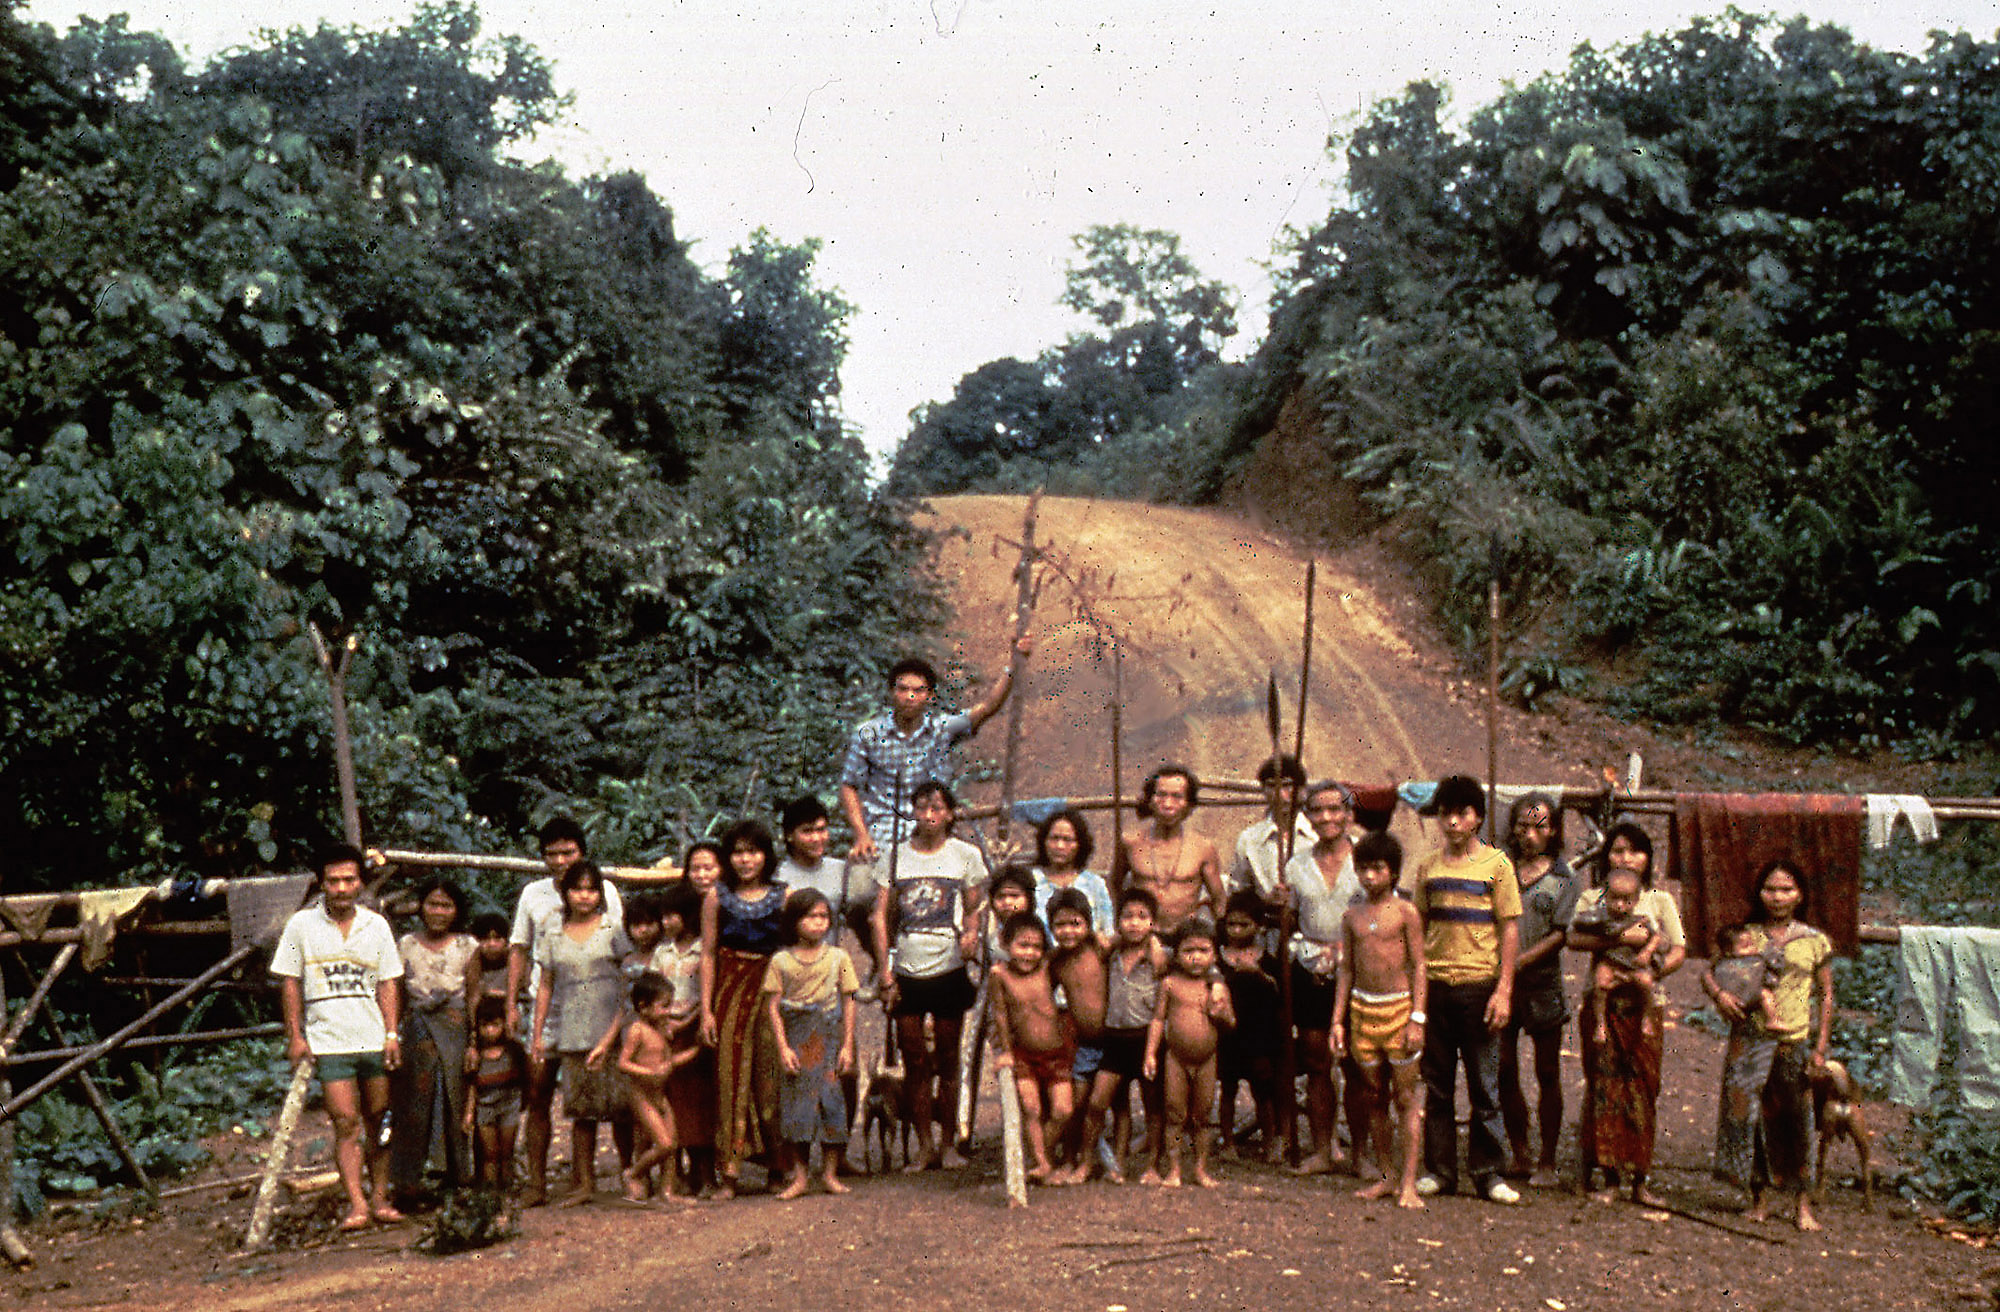 A Penan blockade in the 1980s. Image from Bruno Manser Fonds